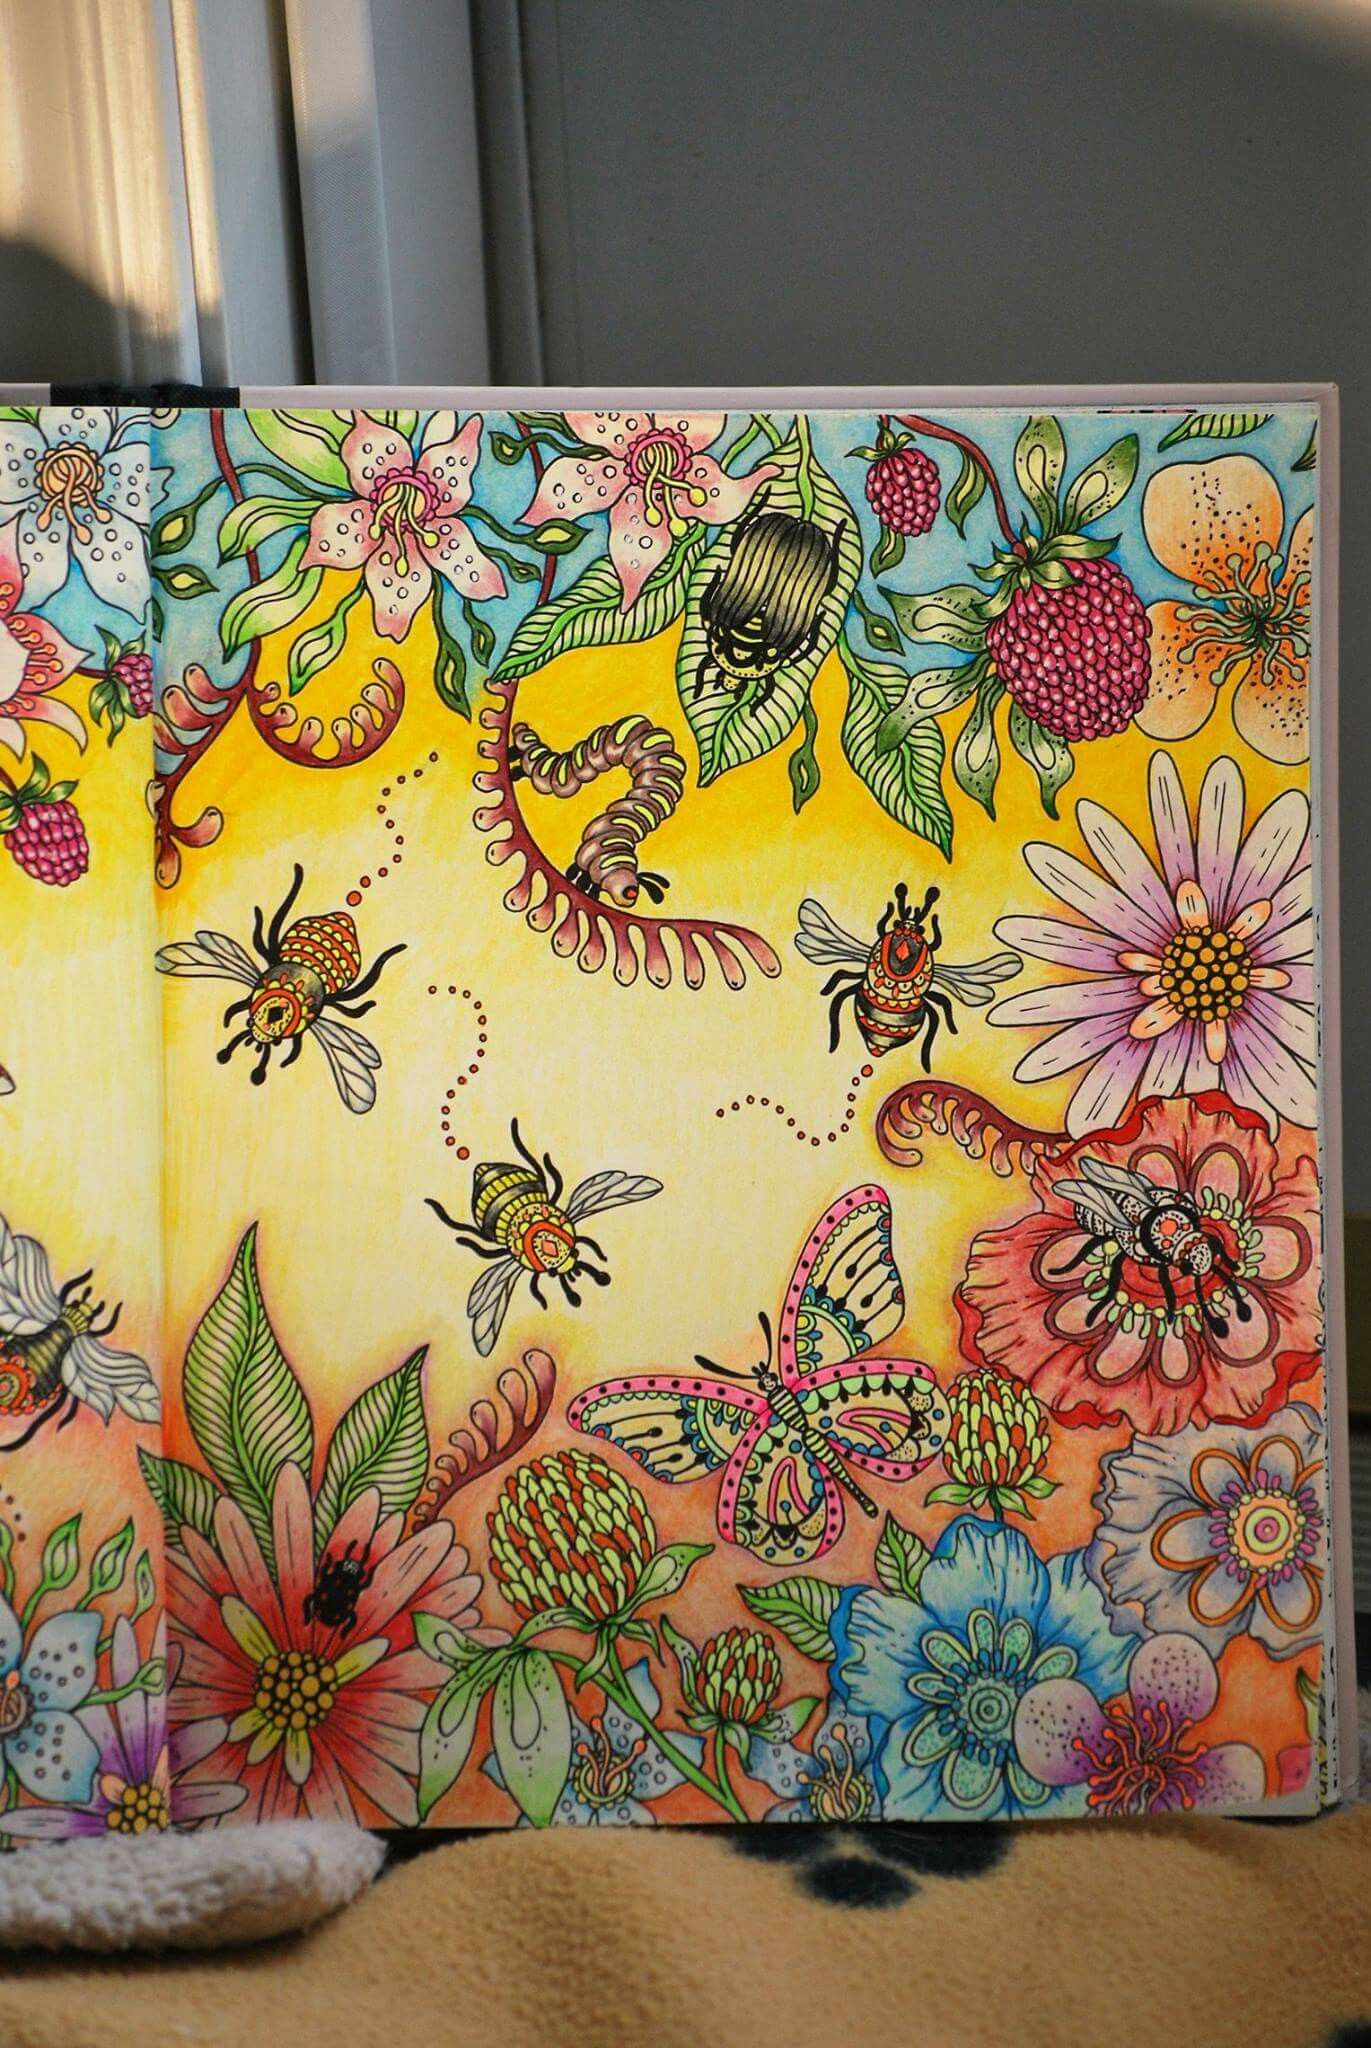 Pin by Pat Eastland on ColorBooks:Hanna Karlzon | Pinterest ...